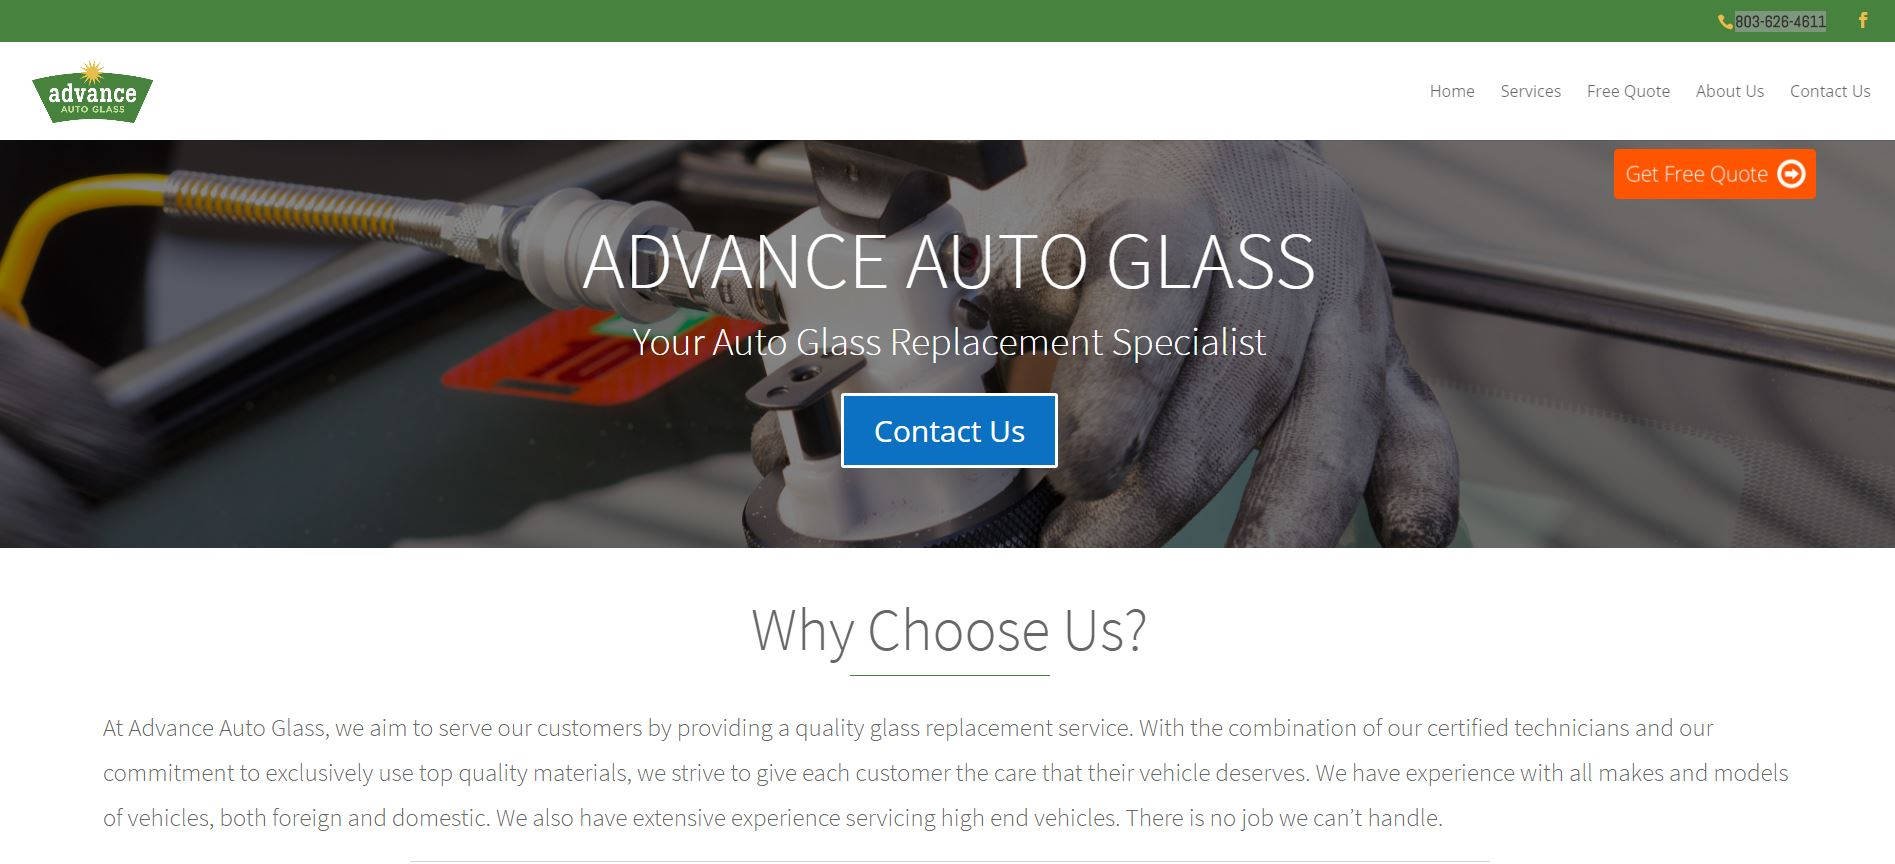 Auto Glass Quote Auto Glass Replacement & Repair  Advance Auto Glass